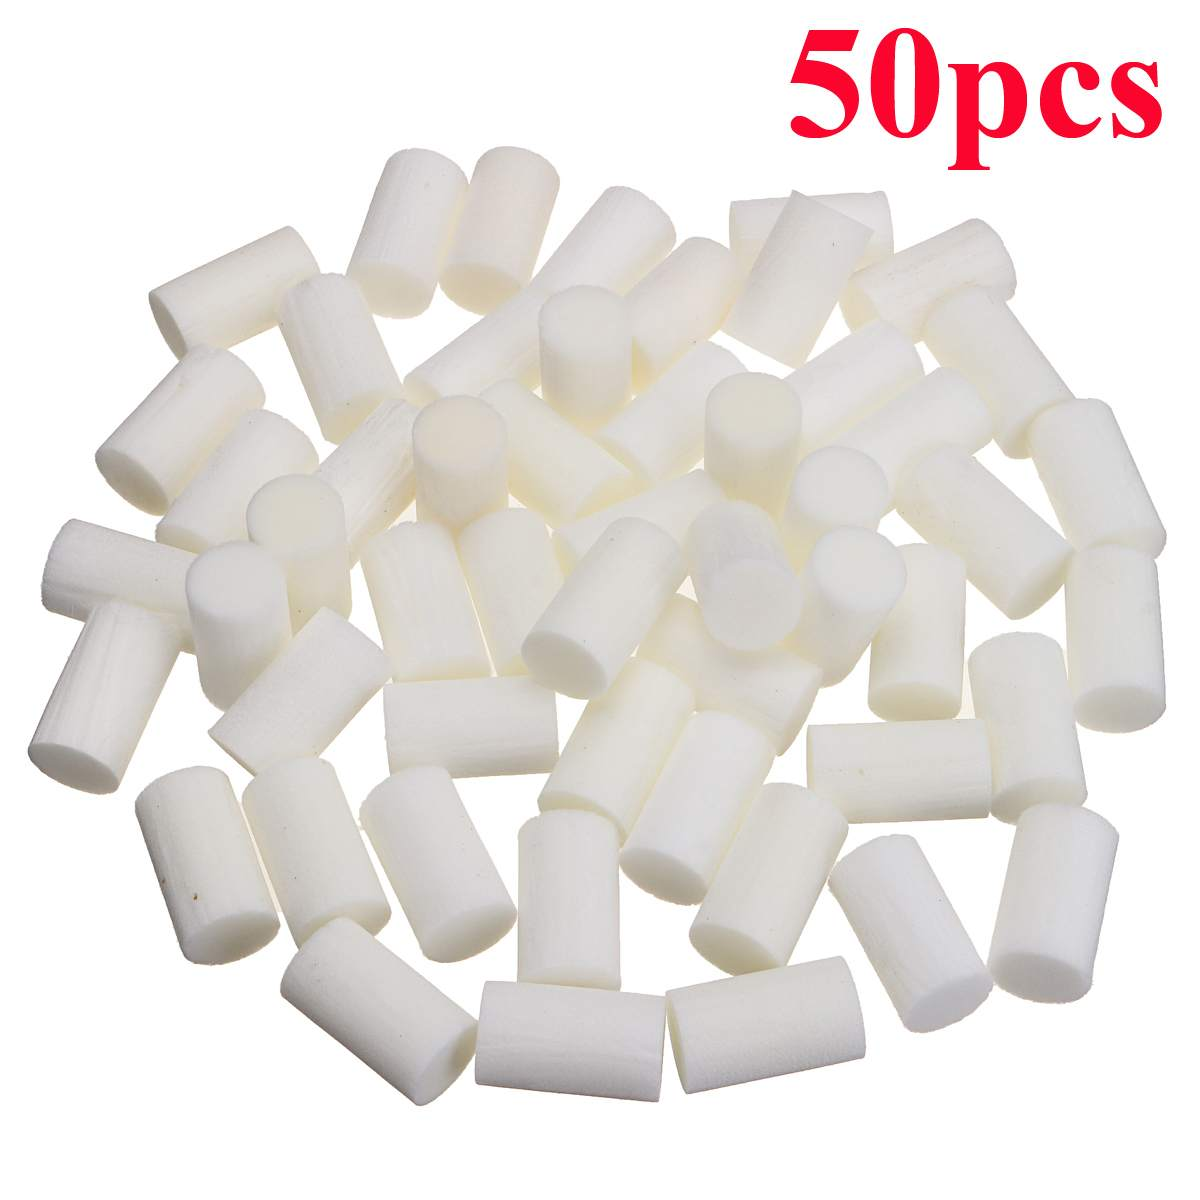 New 50pcs High Pressure Pump Filter Element Refill 30MPa 35*20mm White Fiber Cotton Filters For Air Compressor System